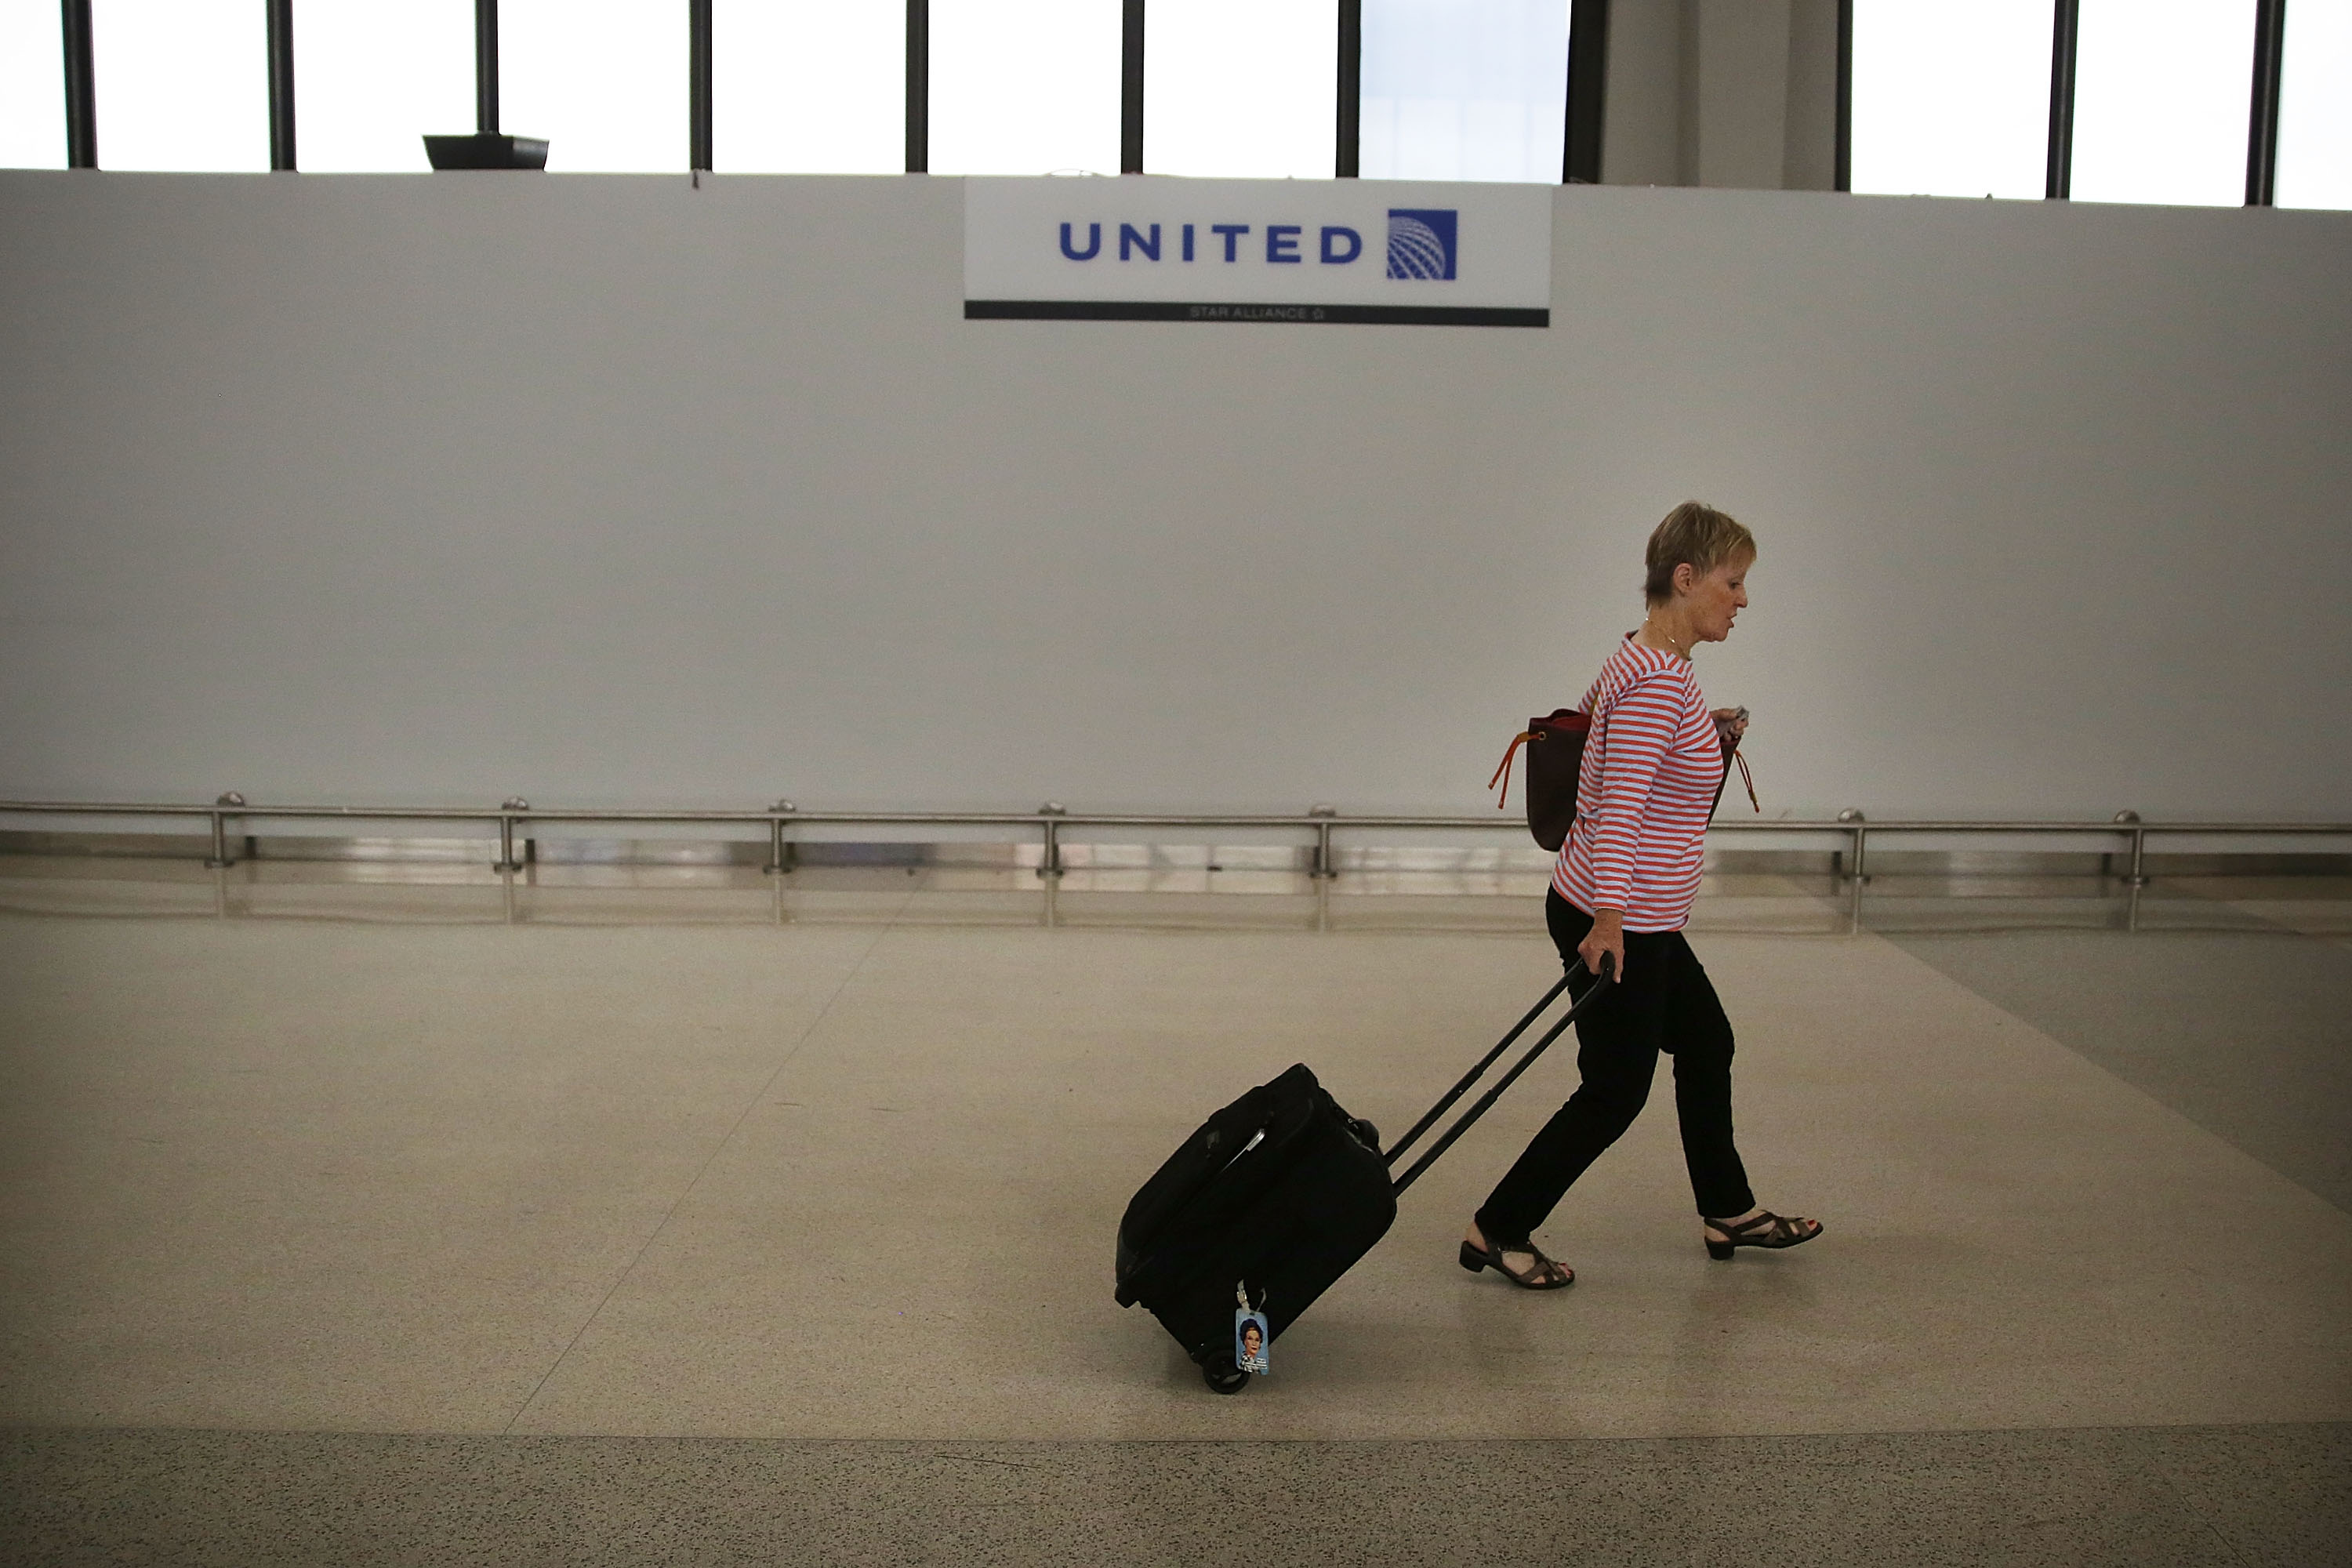 A traveler walks through the United Airlines terminal at Newark Liberty Airport on July 8, 2015 in Newark, New Jersey.